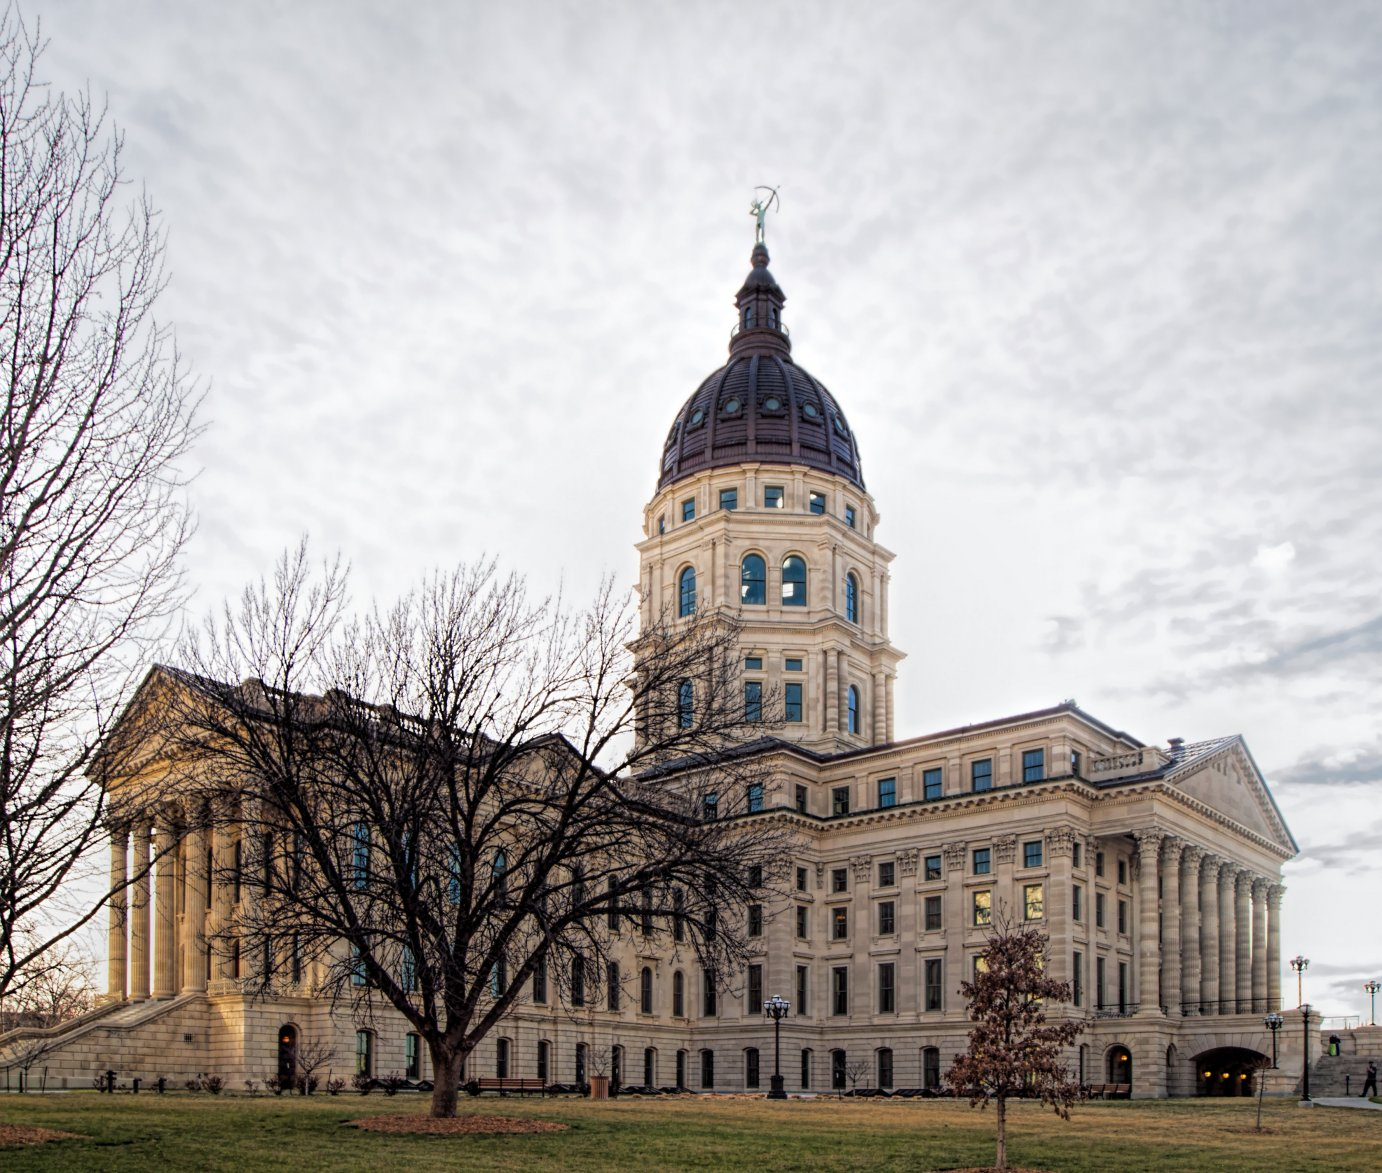 Kansas Statehouse building (Photo by Dan Skinner)